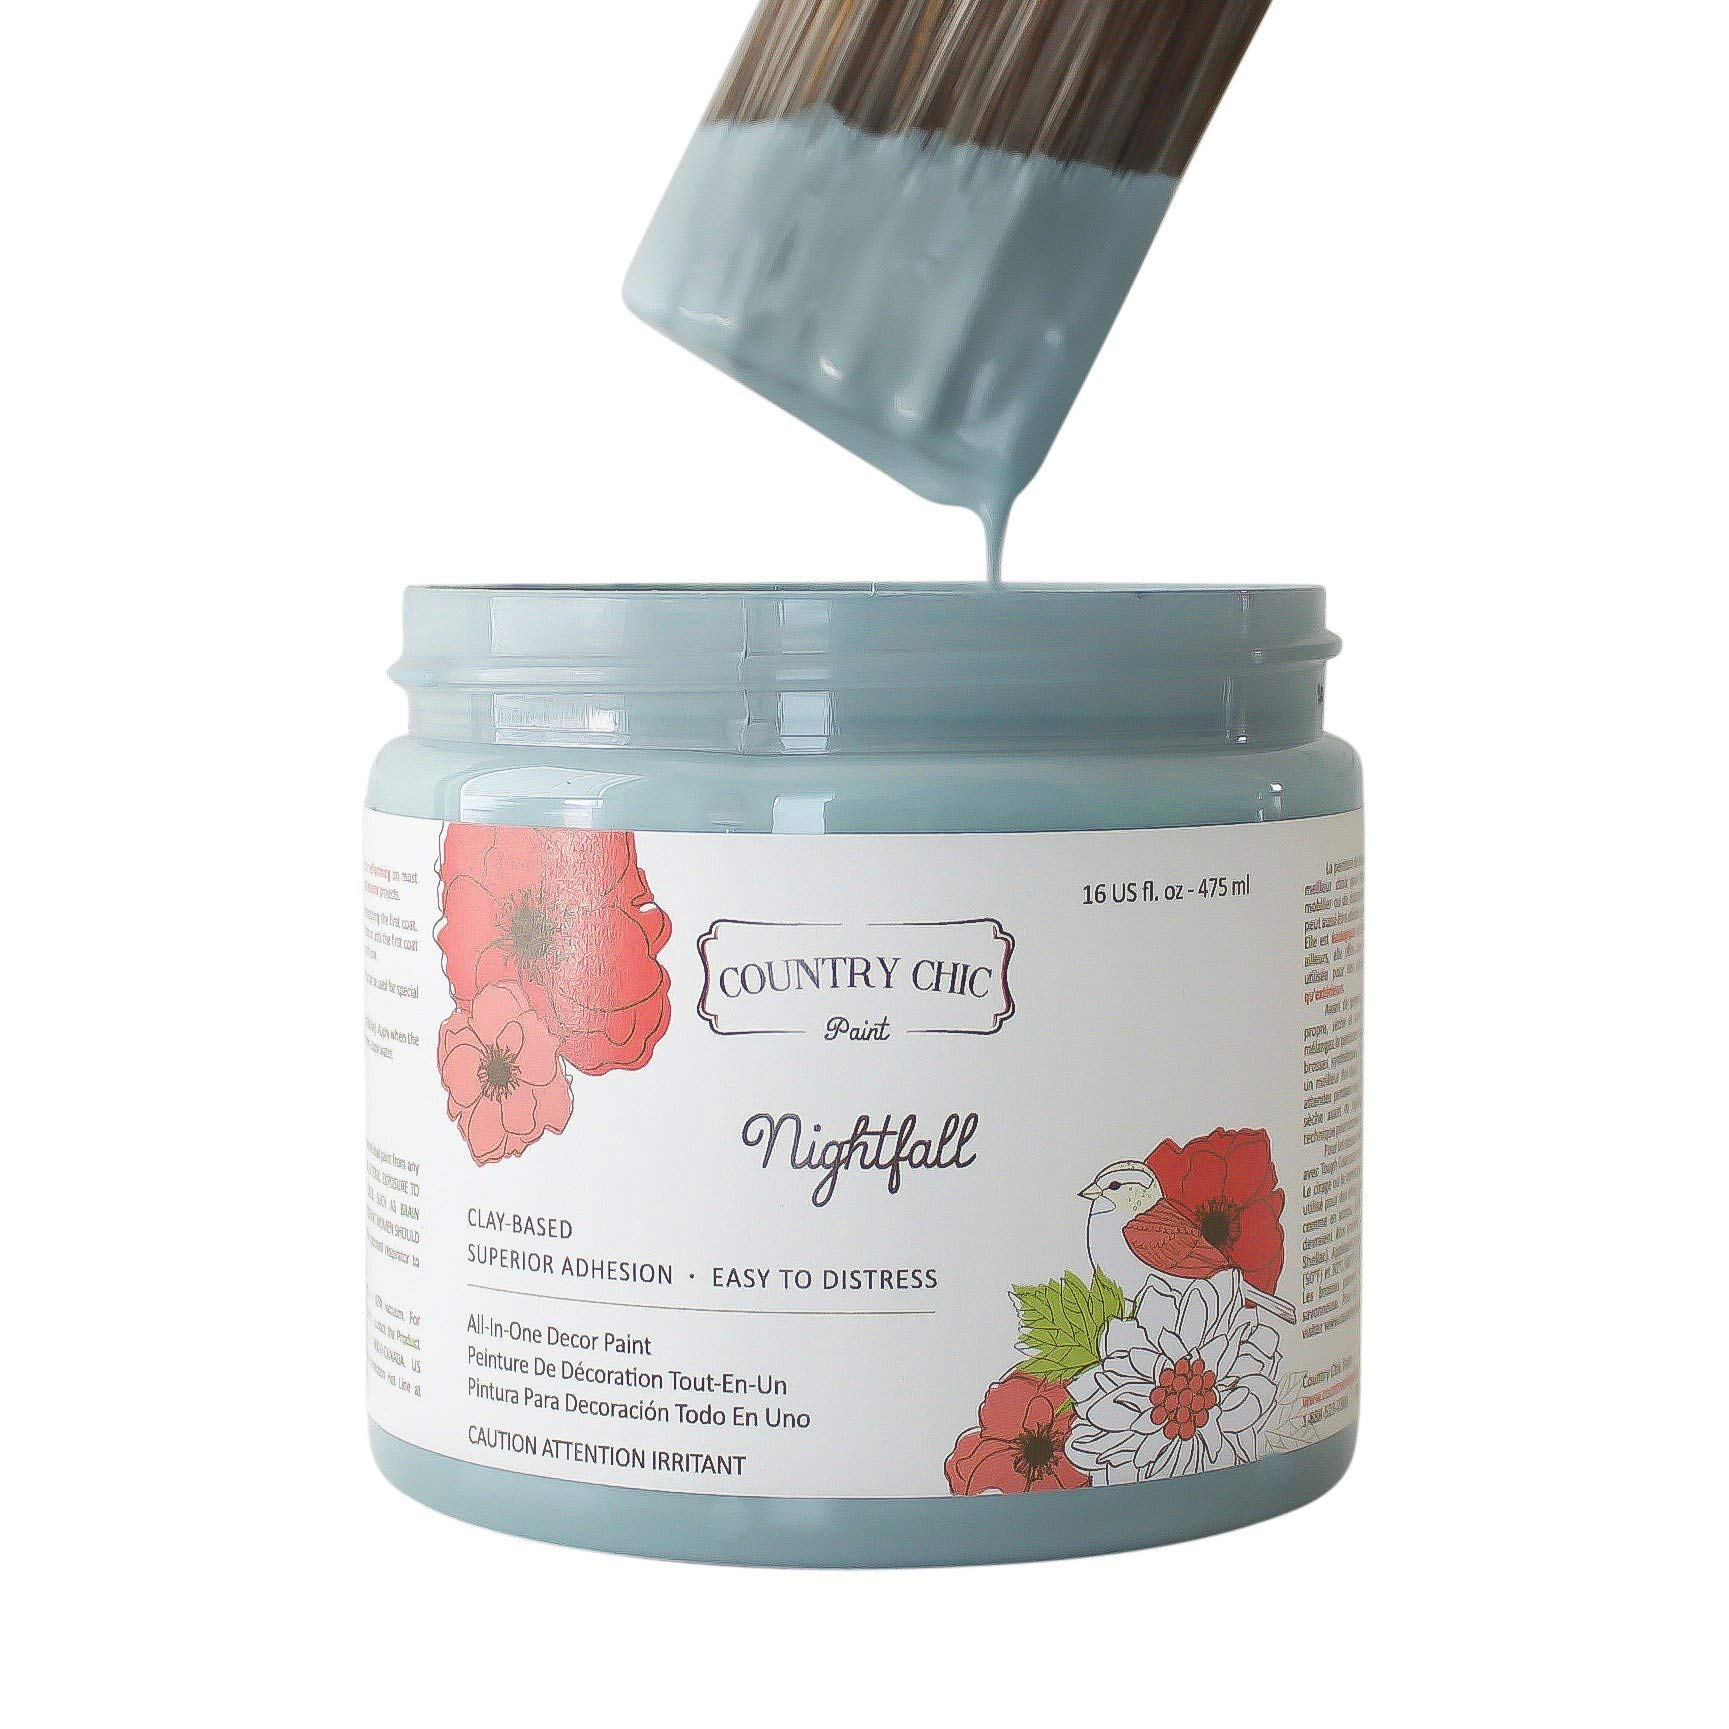 Chalk Style Paint - for Furniture, Home Decor, Crafts - Eco-Friendly - All-in-One - No Wax Needed (Nightfall [Blue], Pint (16 oz))